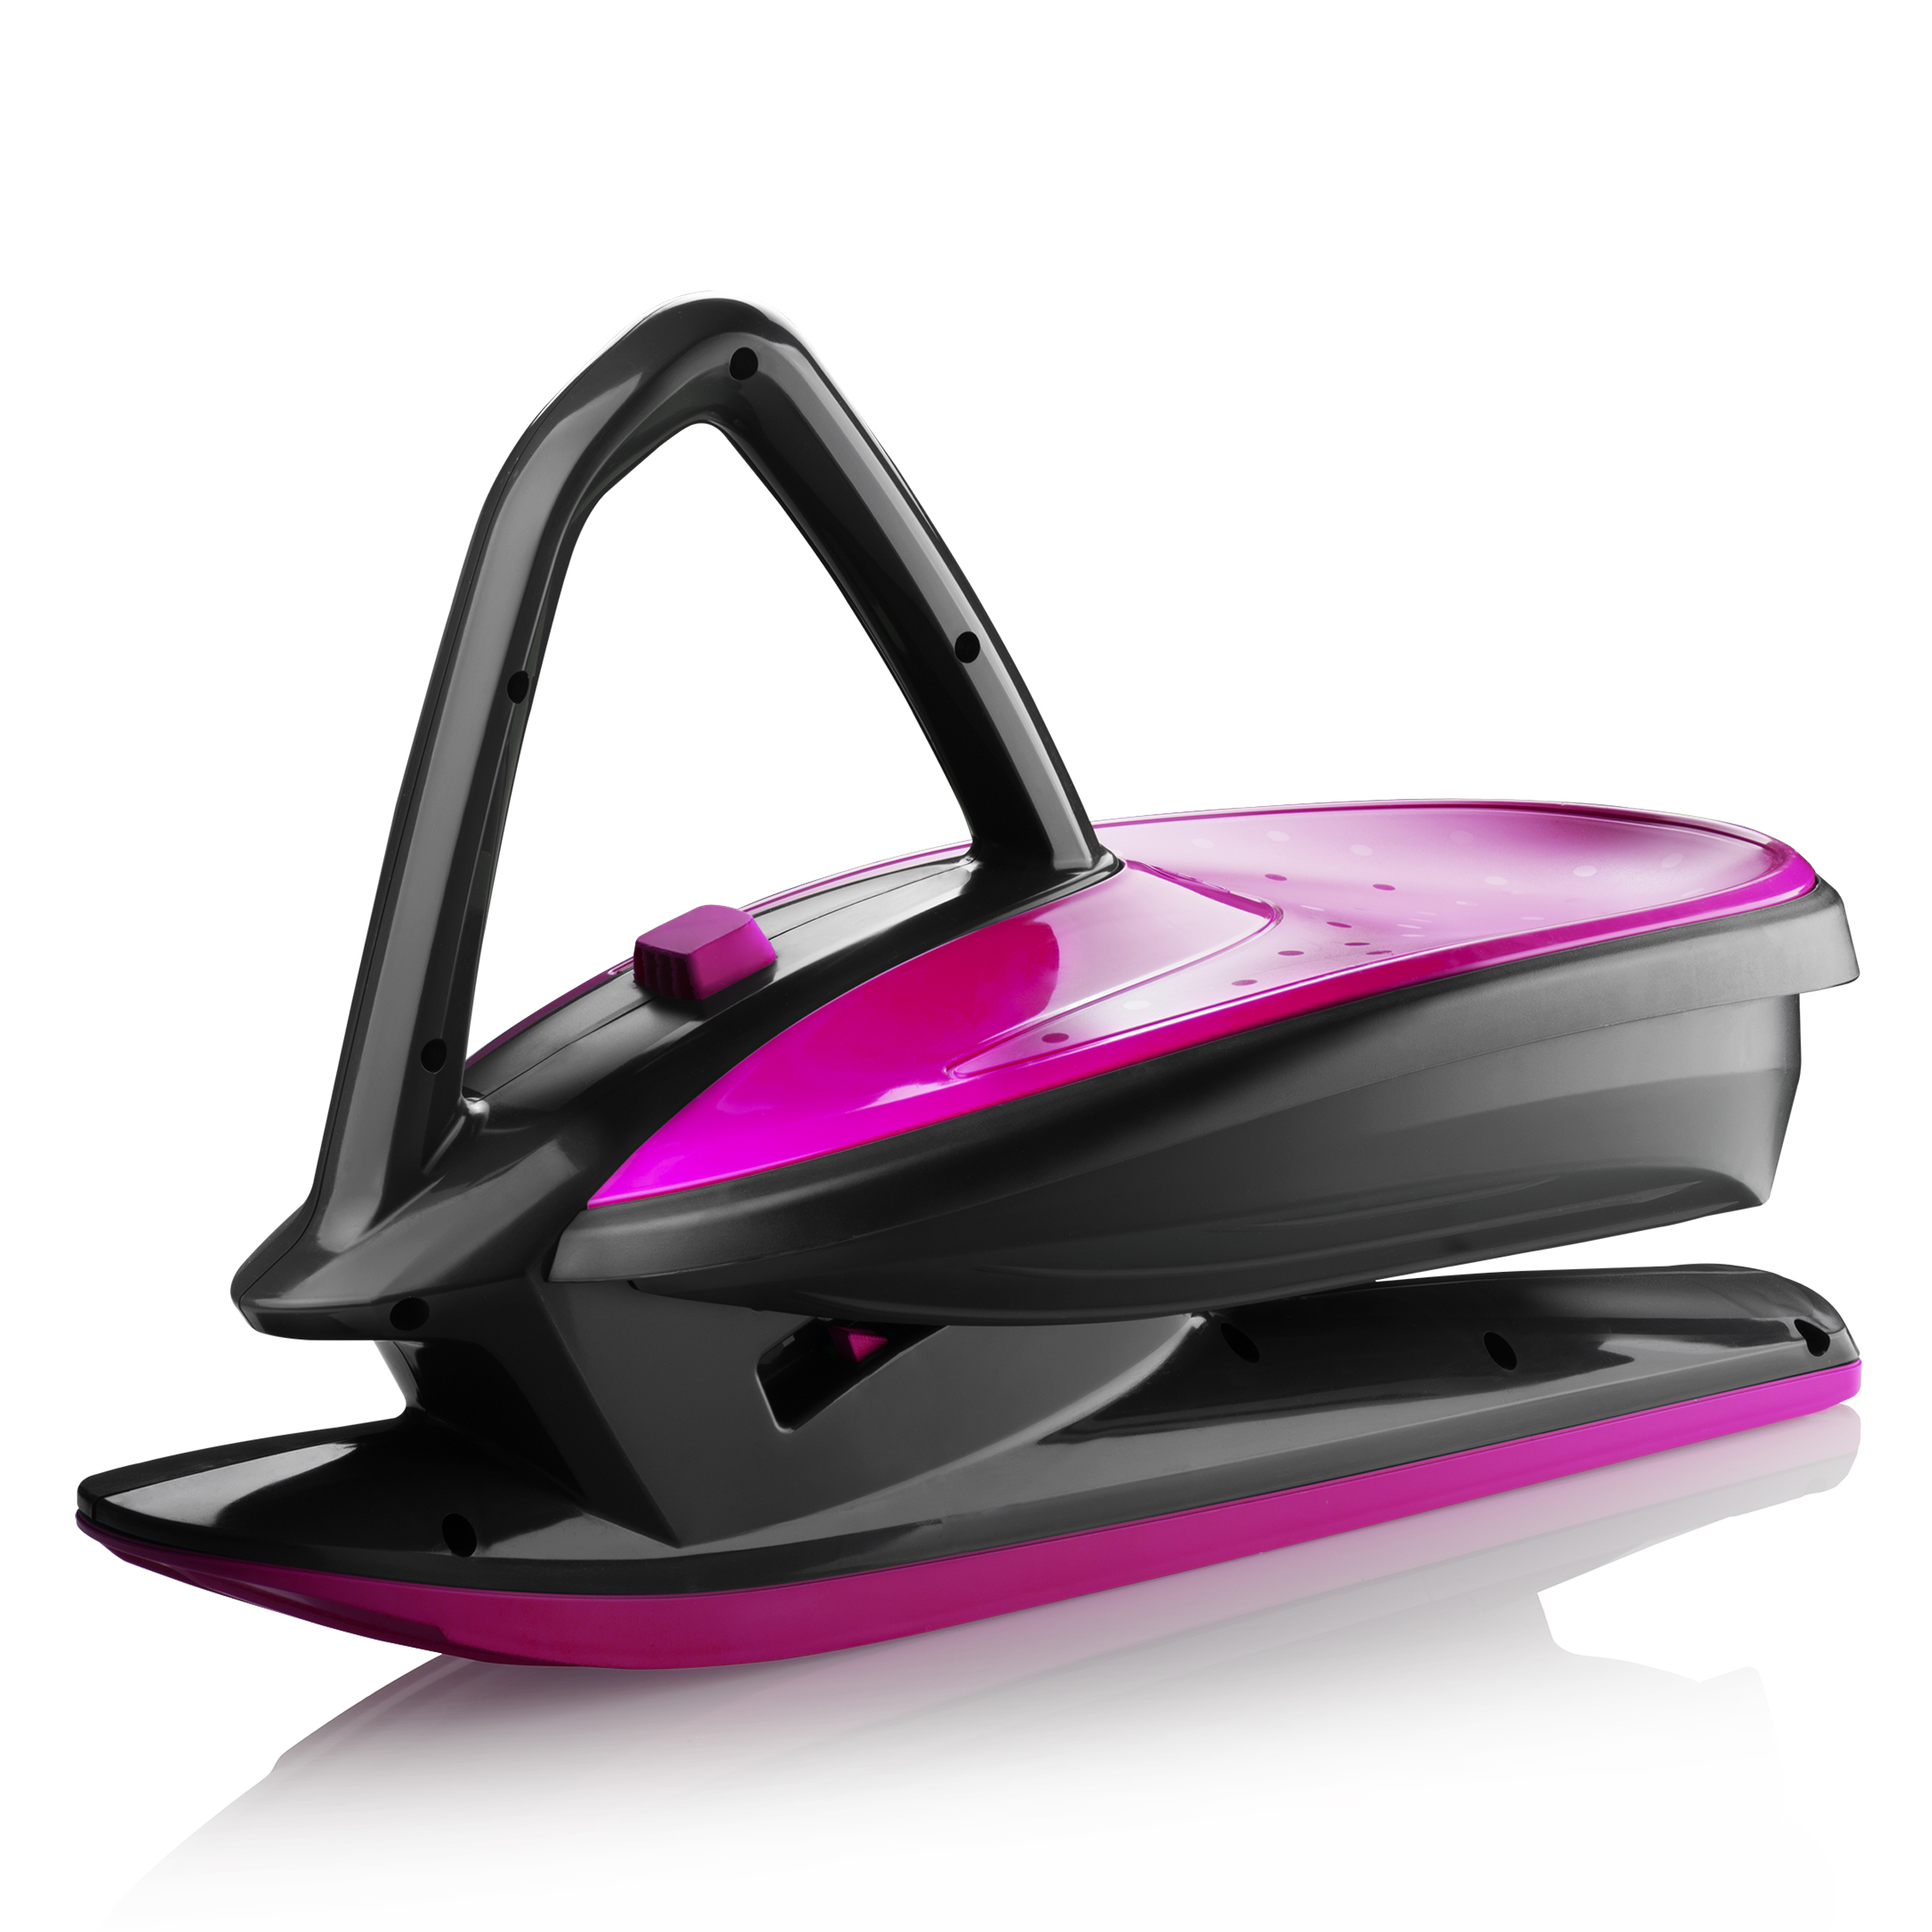 Skidrifter Slope Racer Ski Sled for Kids and Adults with Manual Stability Program Button by Gizmo Riders Monster Pink by Plastkon